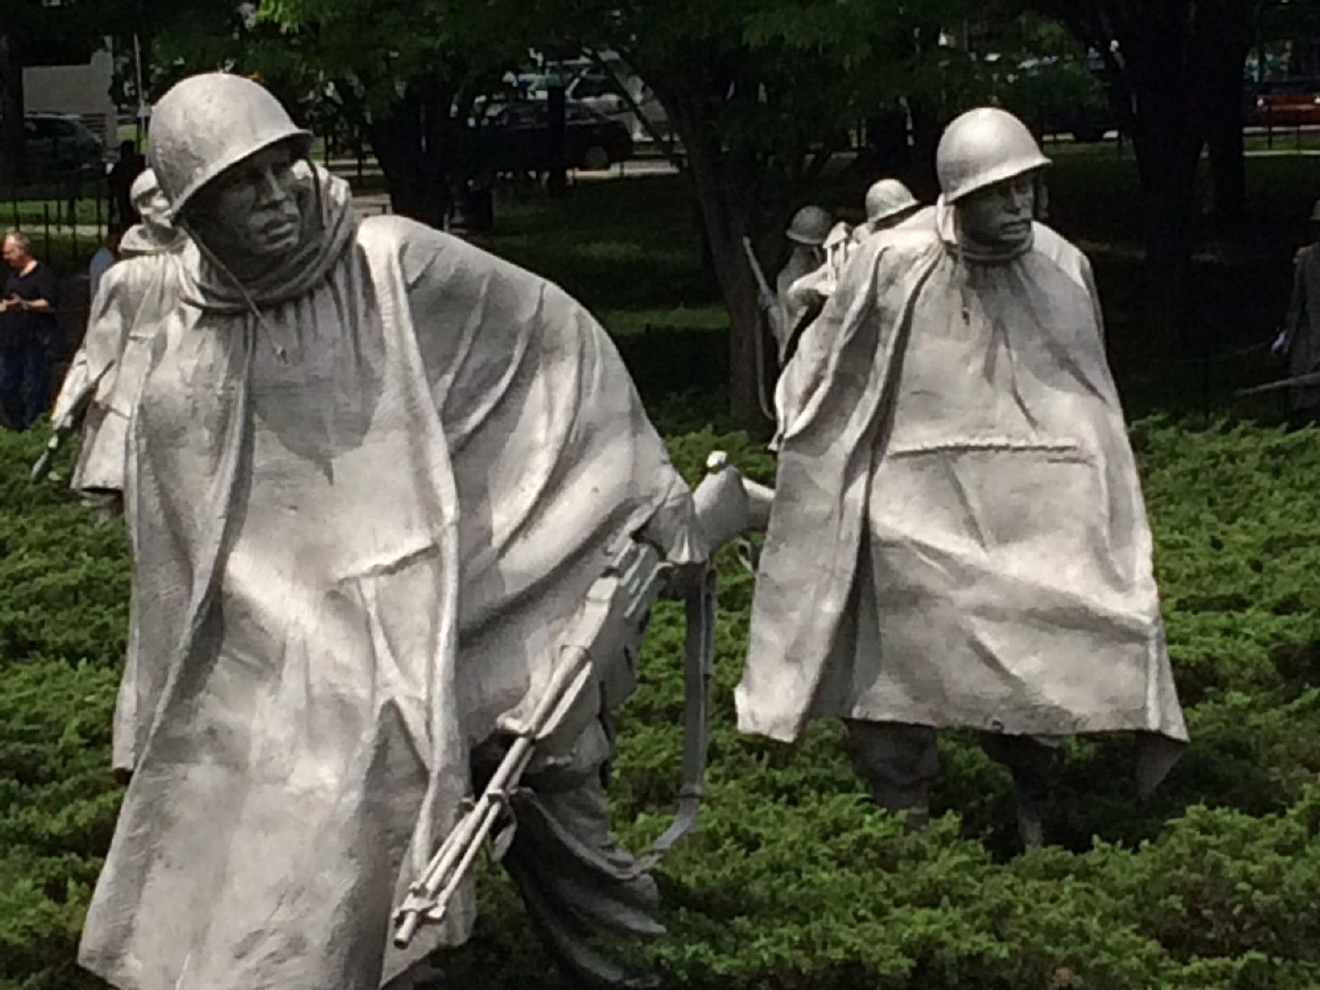 Sculptor Of Korean War Memorial Sol Rss At 93